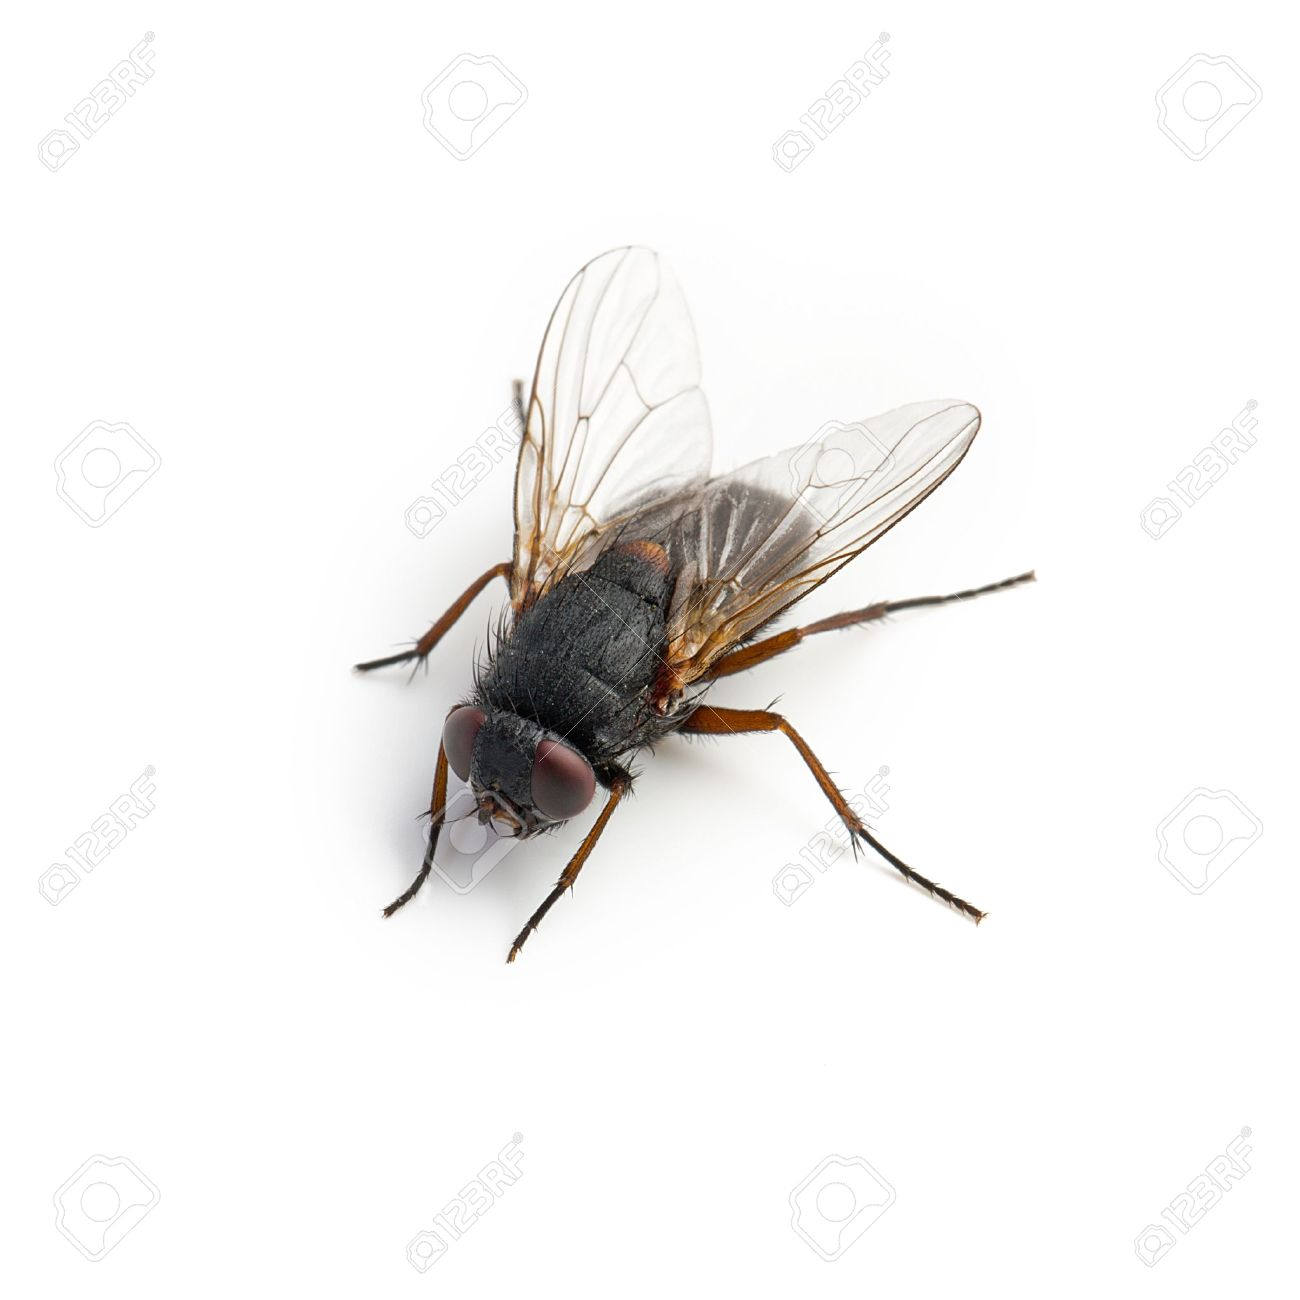 Black Housefly On White Background Stock Photo, Picture And Royalty ...